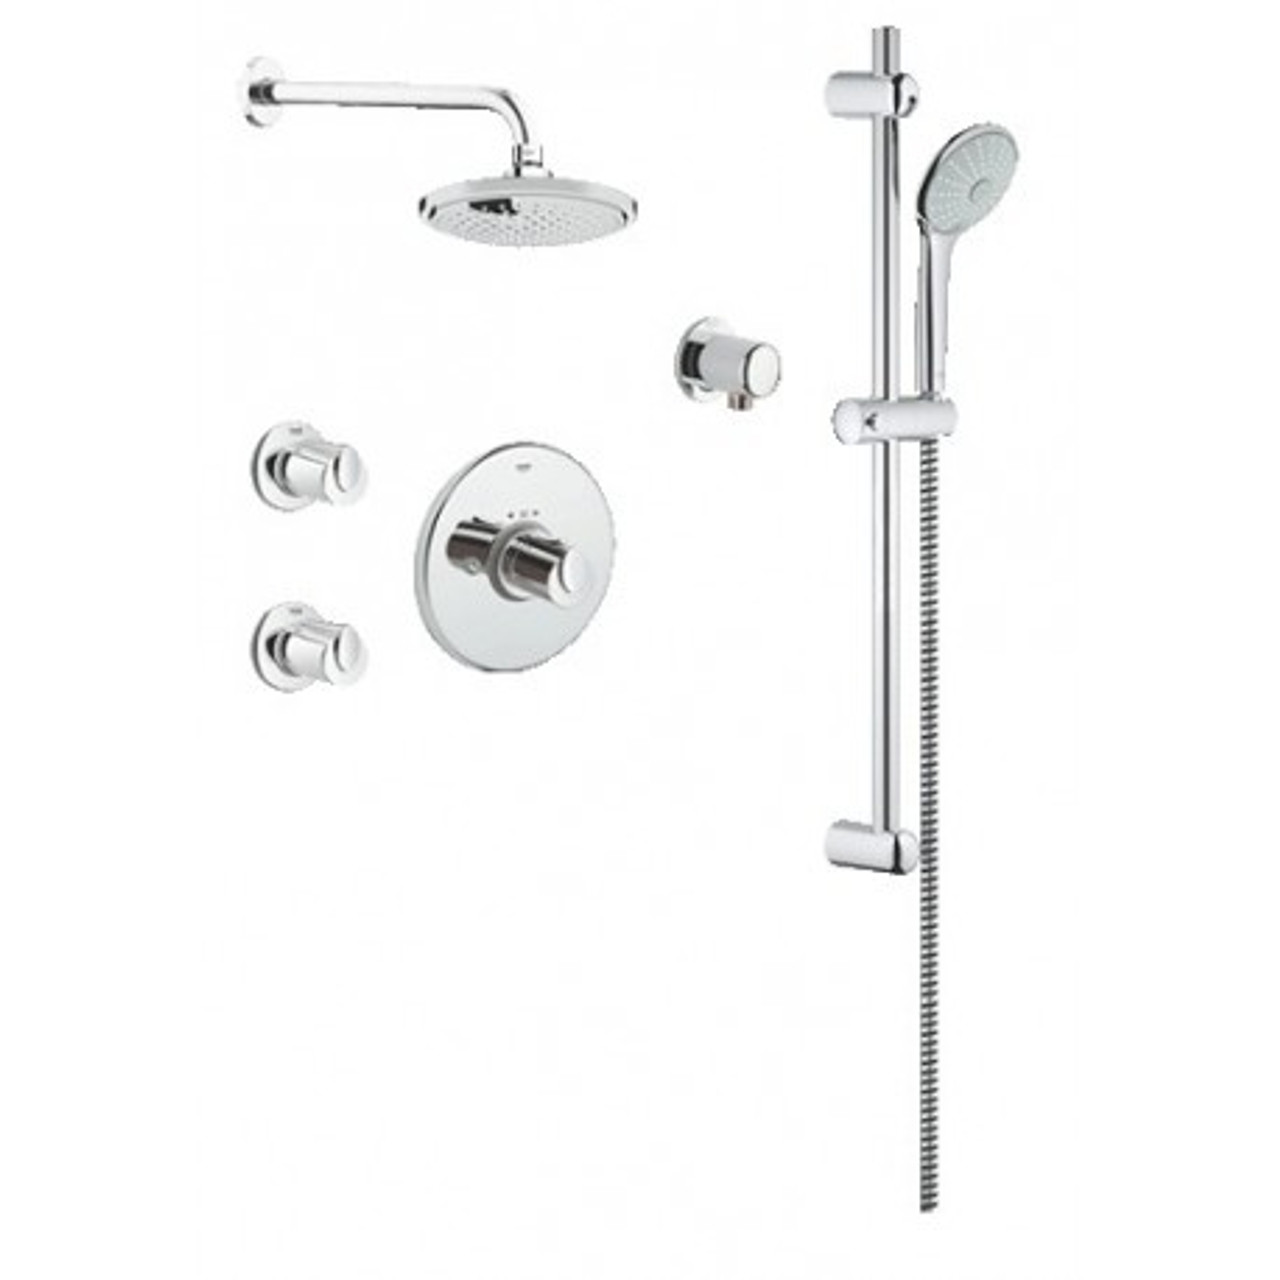 Grohe 117169 Basic Thm Dual Function Shower Kit With Valve